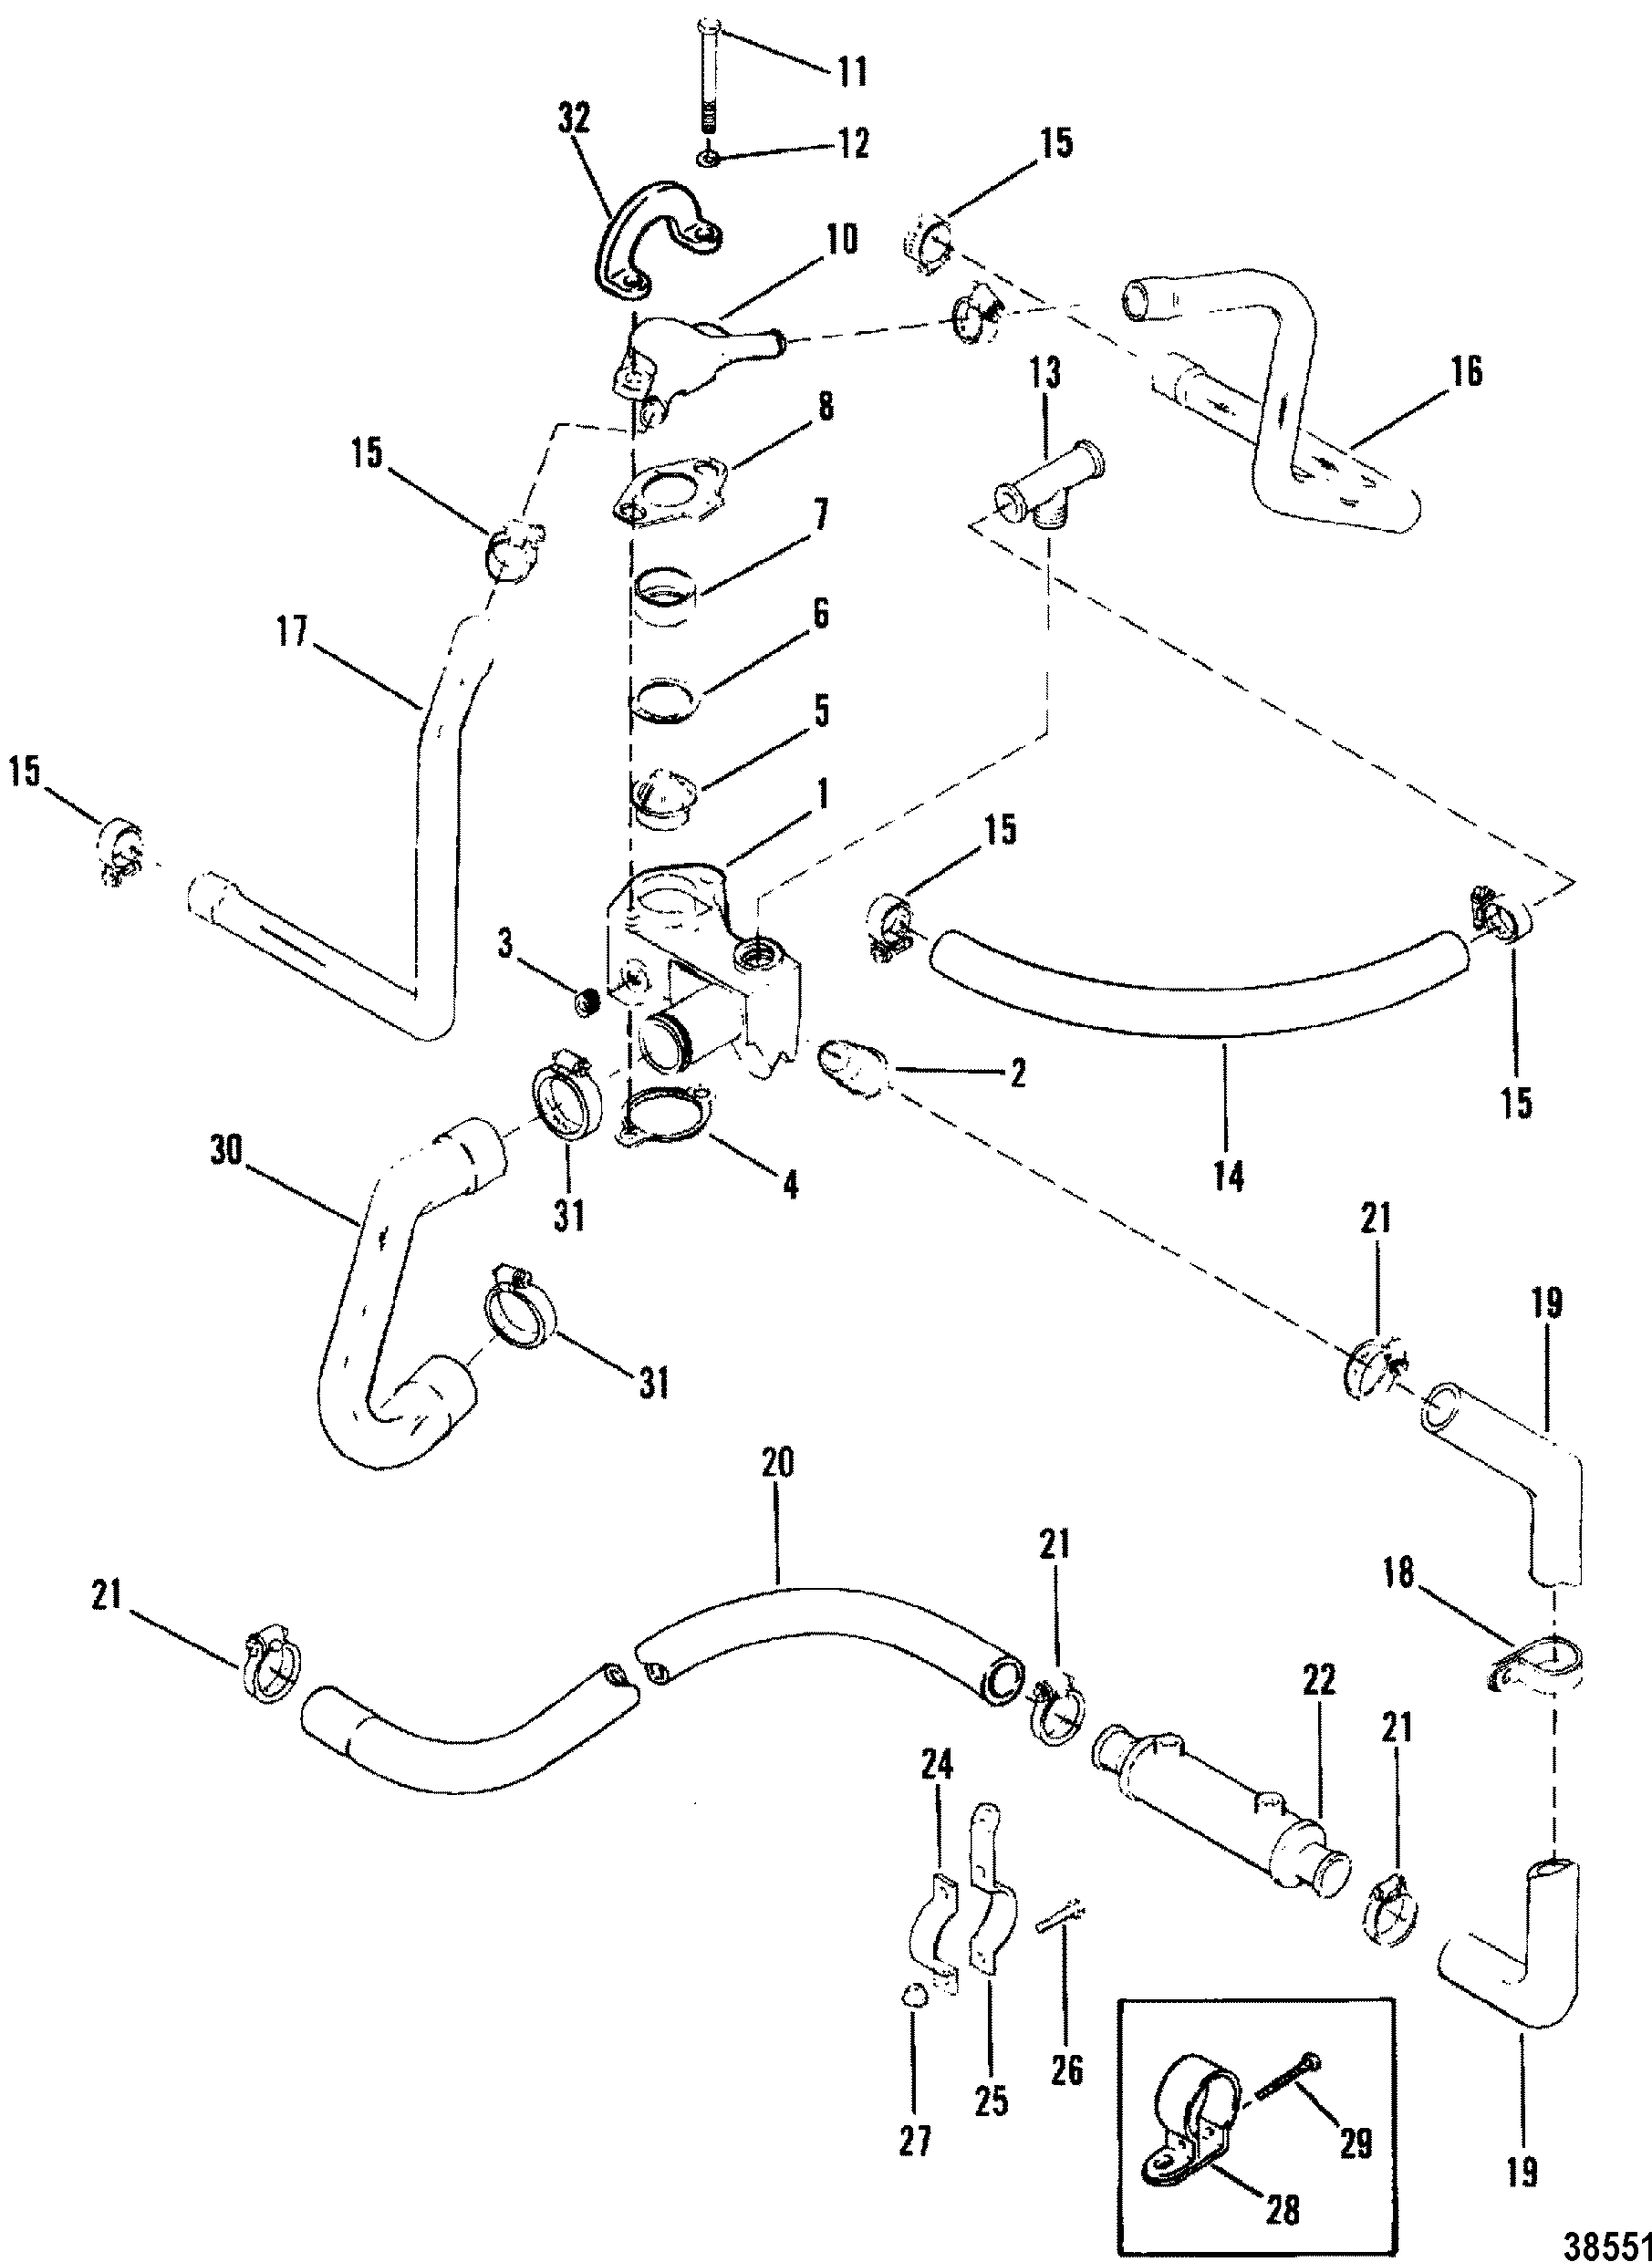 Mercruiser 120 Wiring Diagram Chevy 350 Coolant Flow Engine 260 Harness Schematics Diagrams On